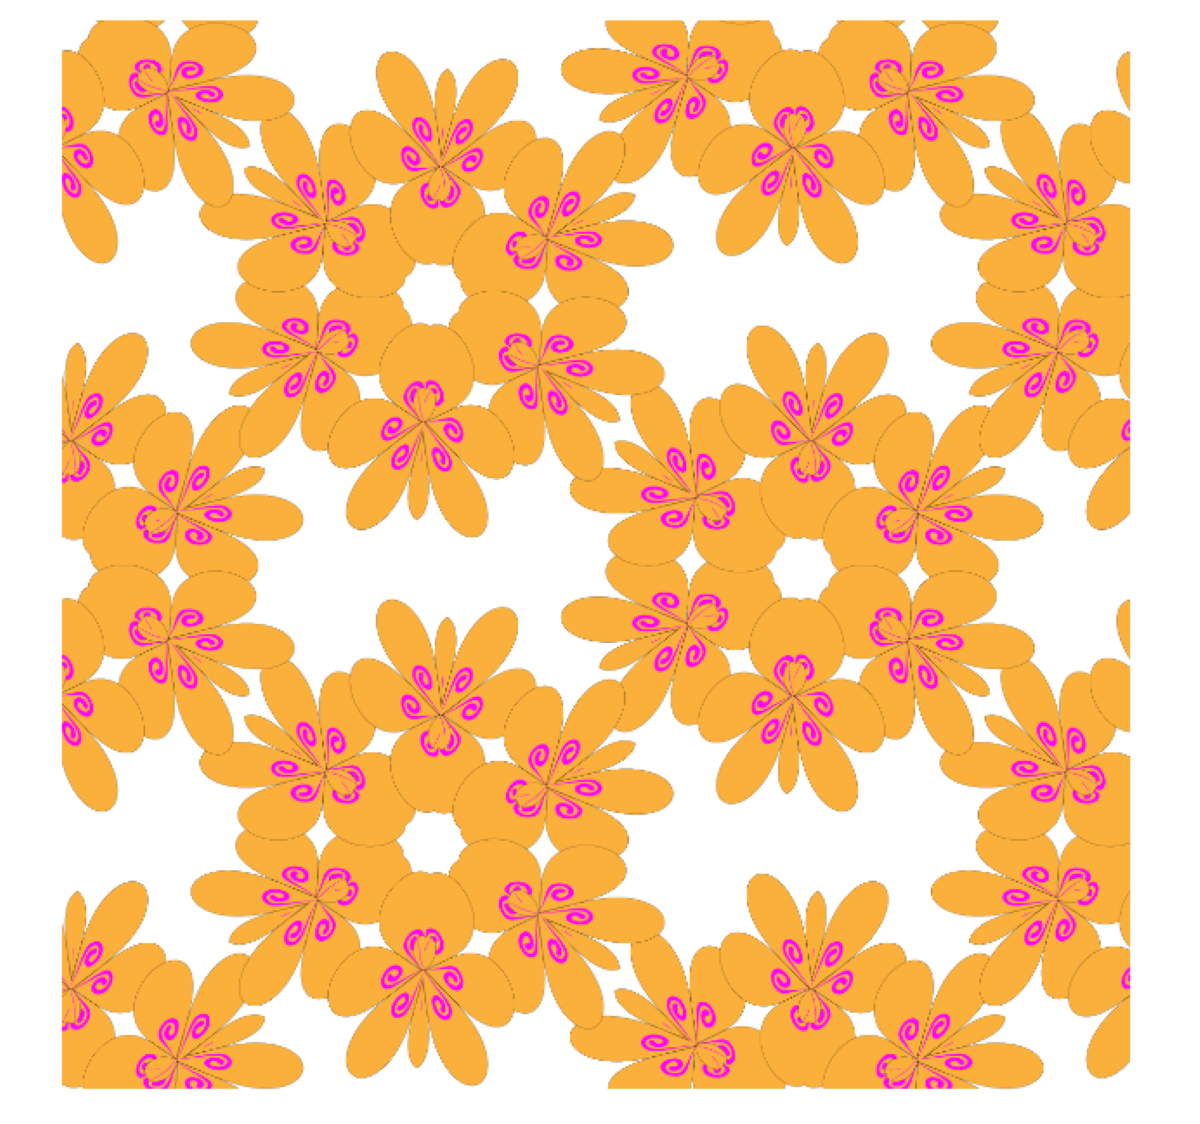 Flower pattern - Decorative abstract background